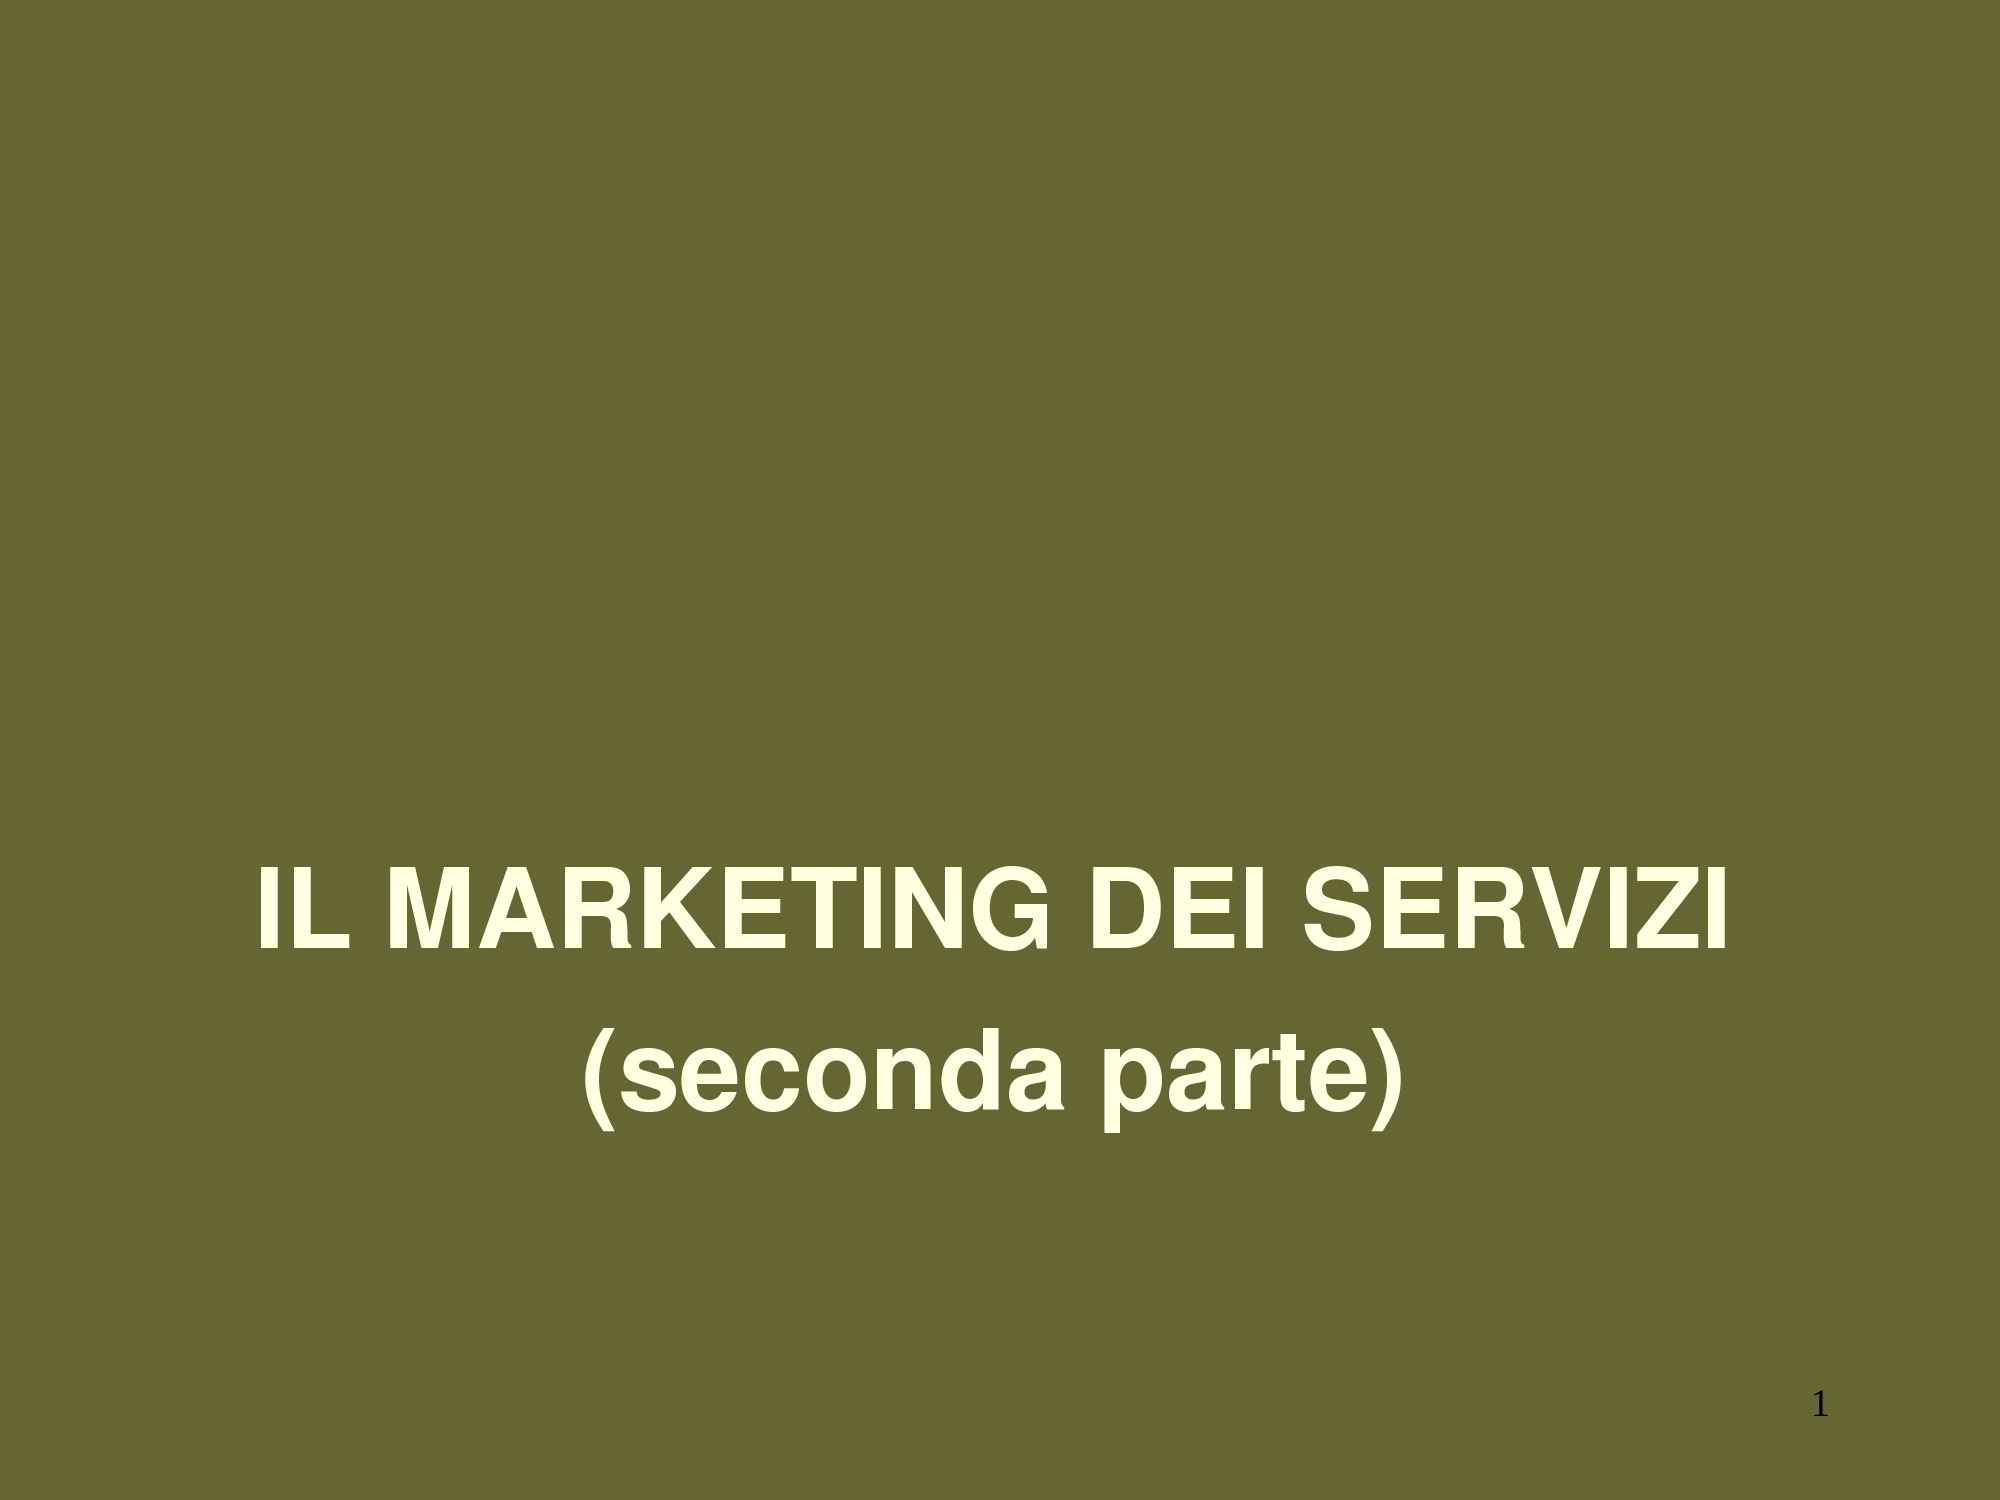 Marketing dei servizi: qualità e customer satisfaction